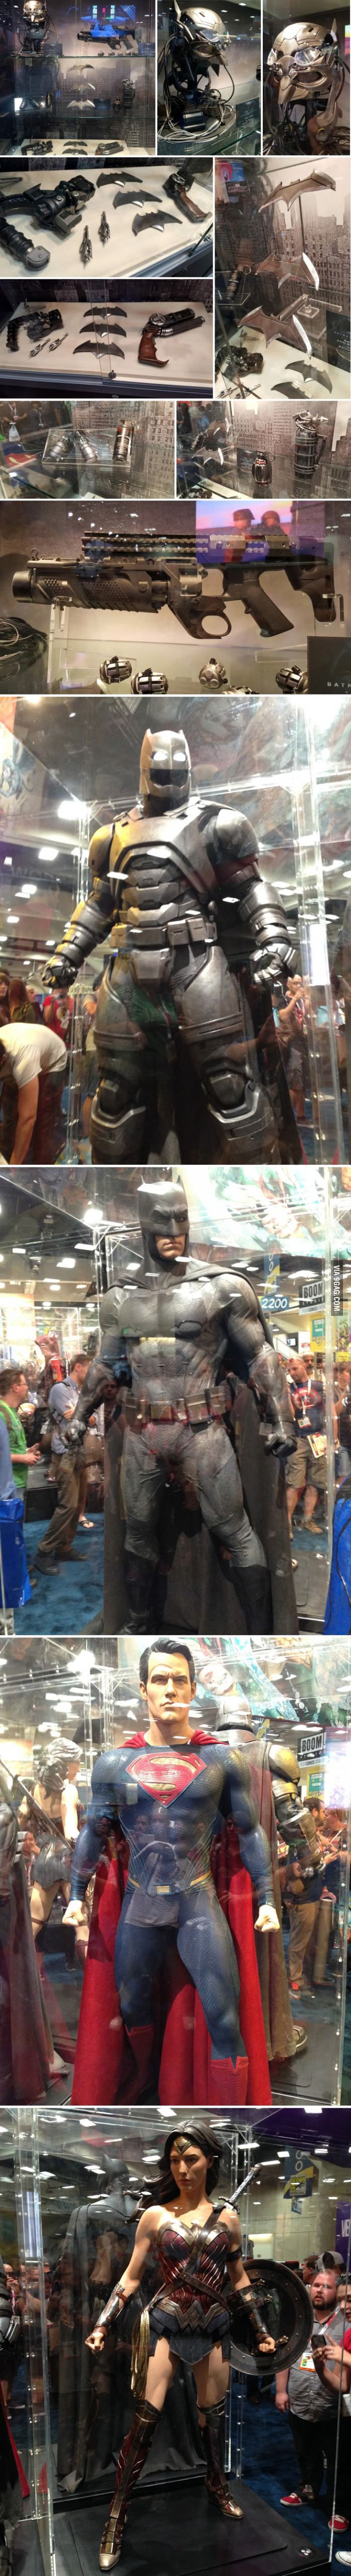 Props and costumes from Batman v Superman. SDCC 2015